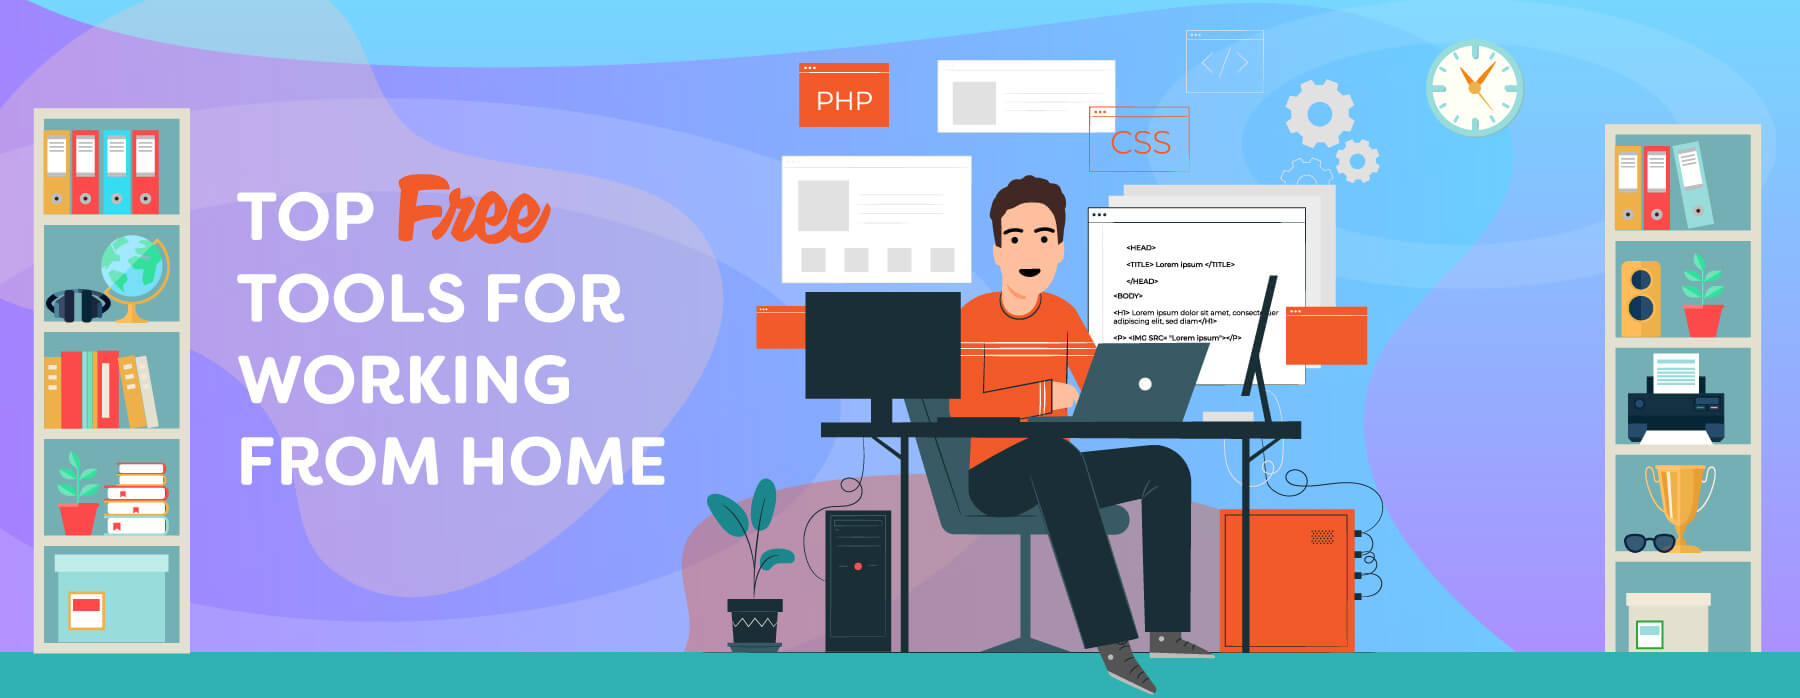 Top Free Tools Working From Home